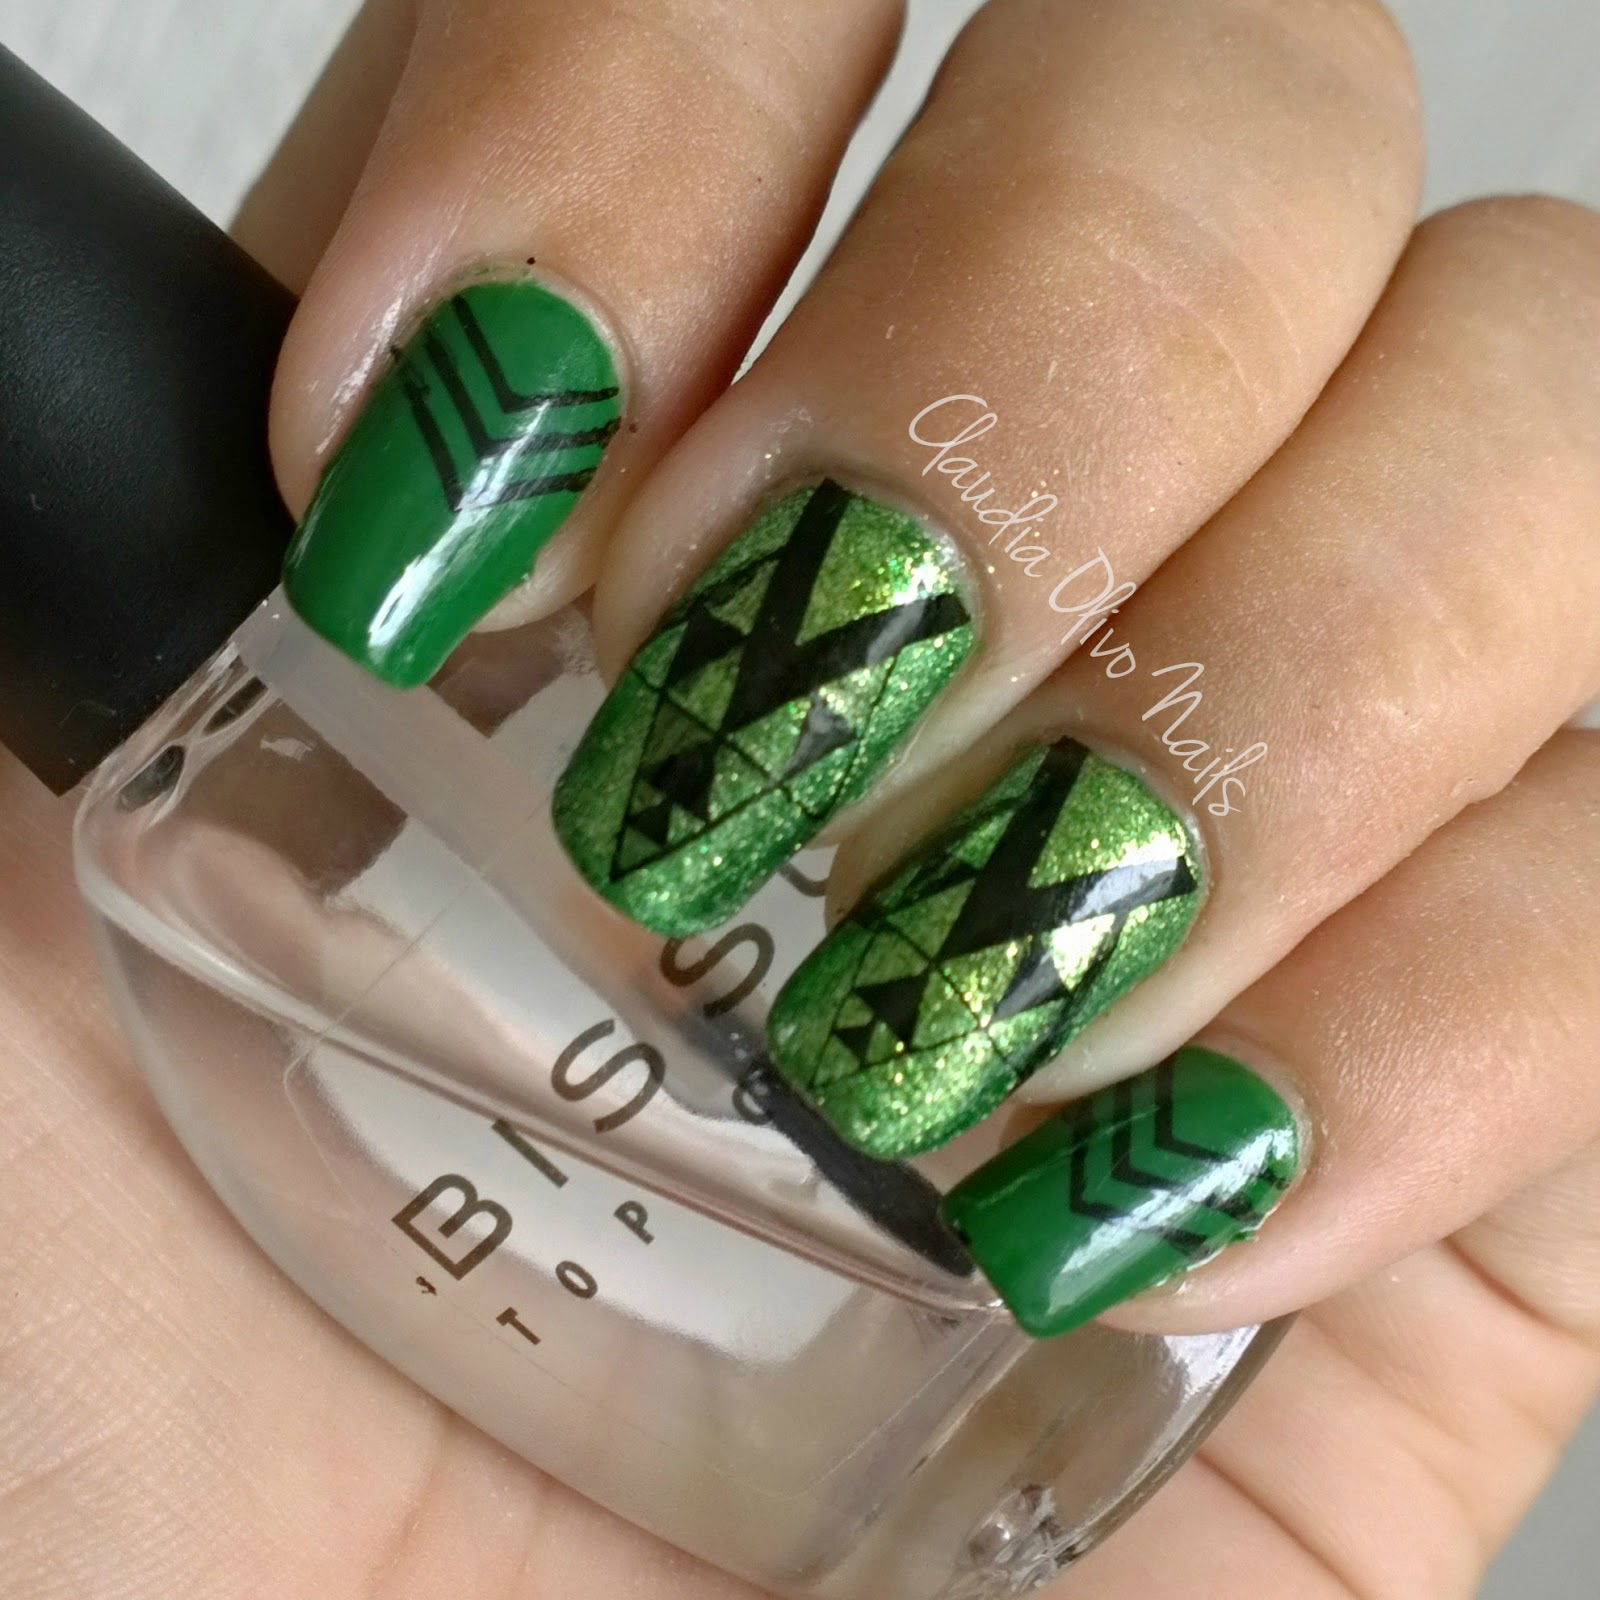 Claudia Olivo Nails: Manicura No. 92 Twin Nails con Diseños de Uñas ...